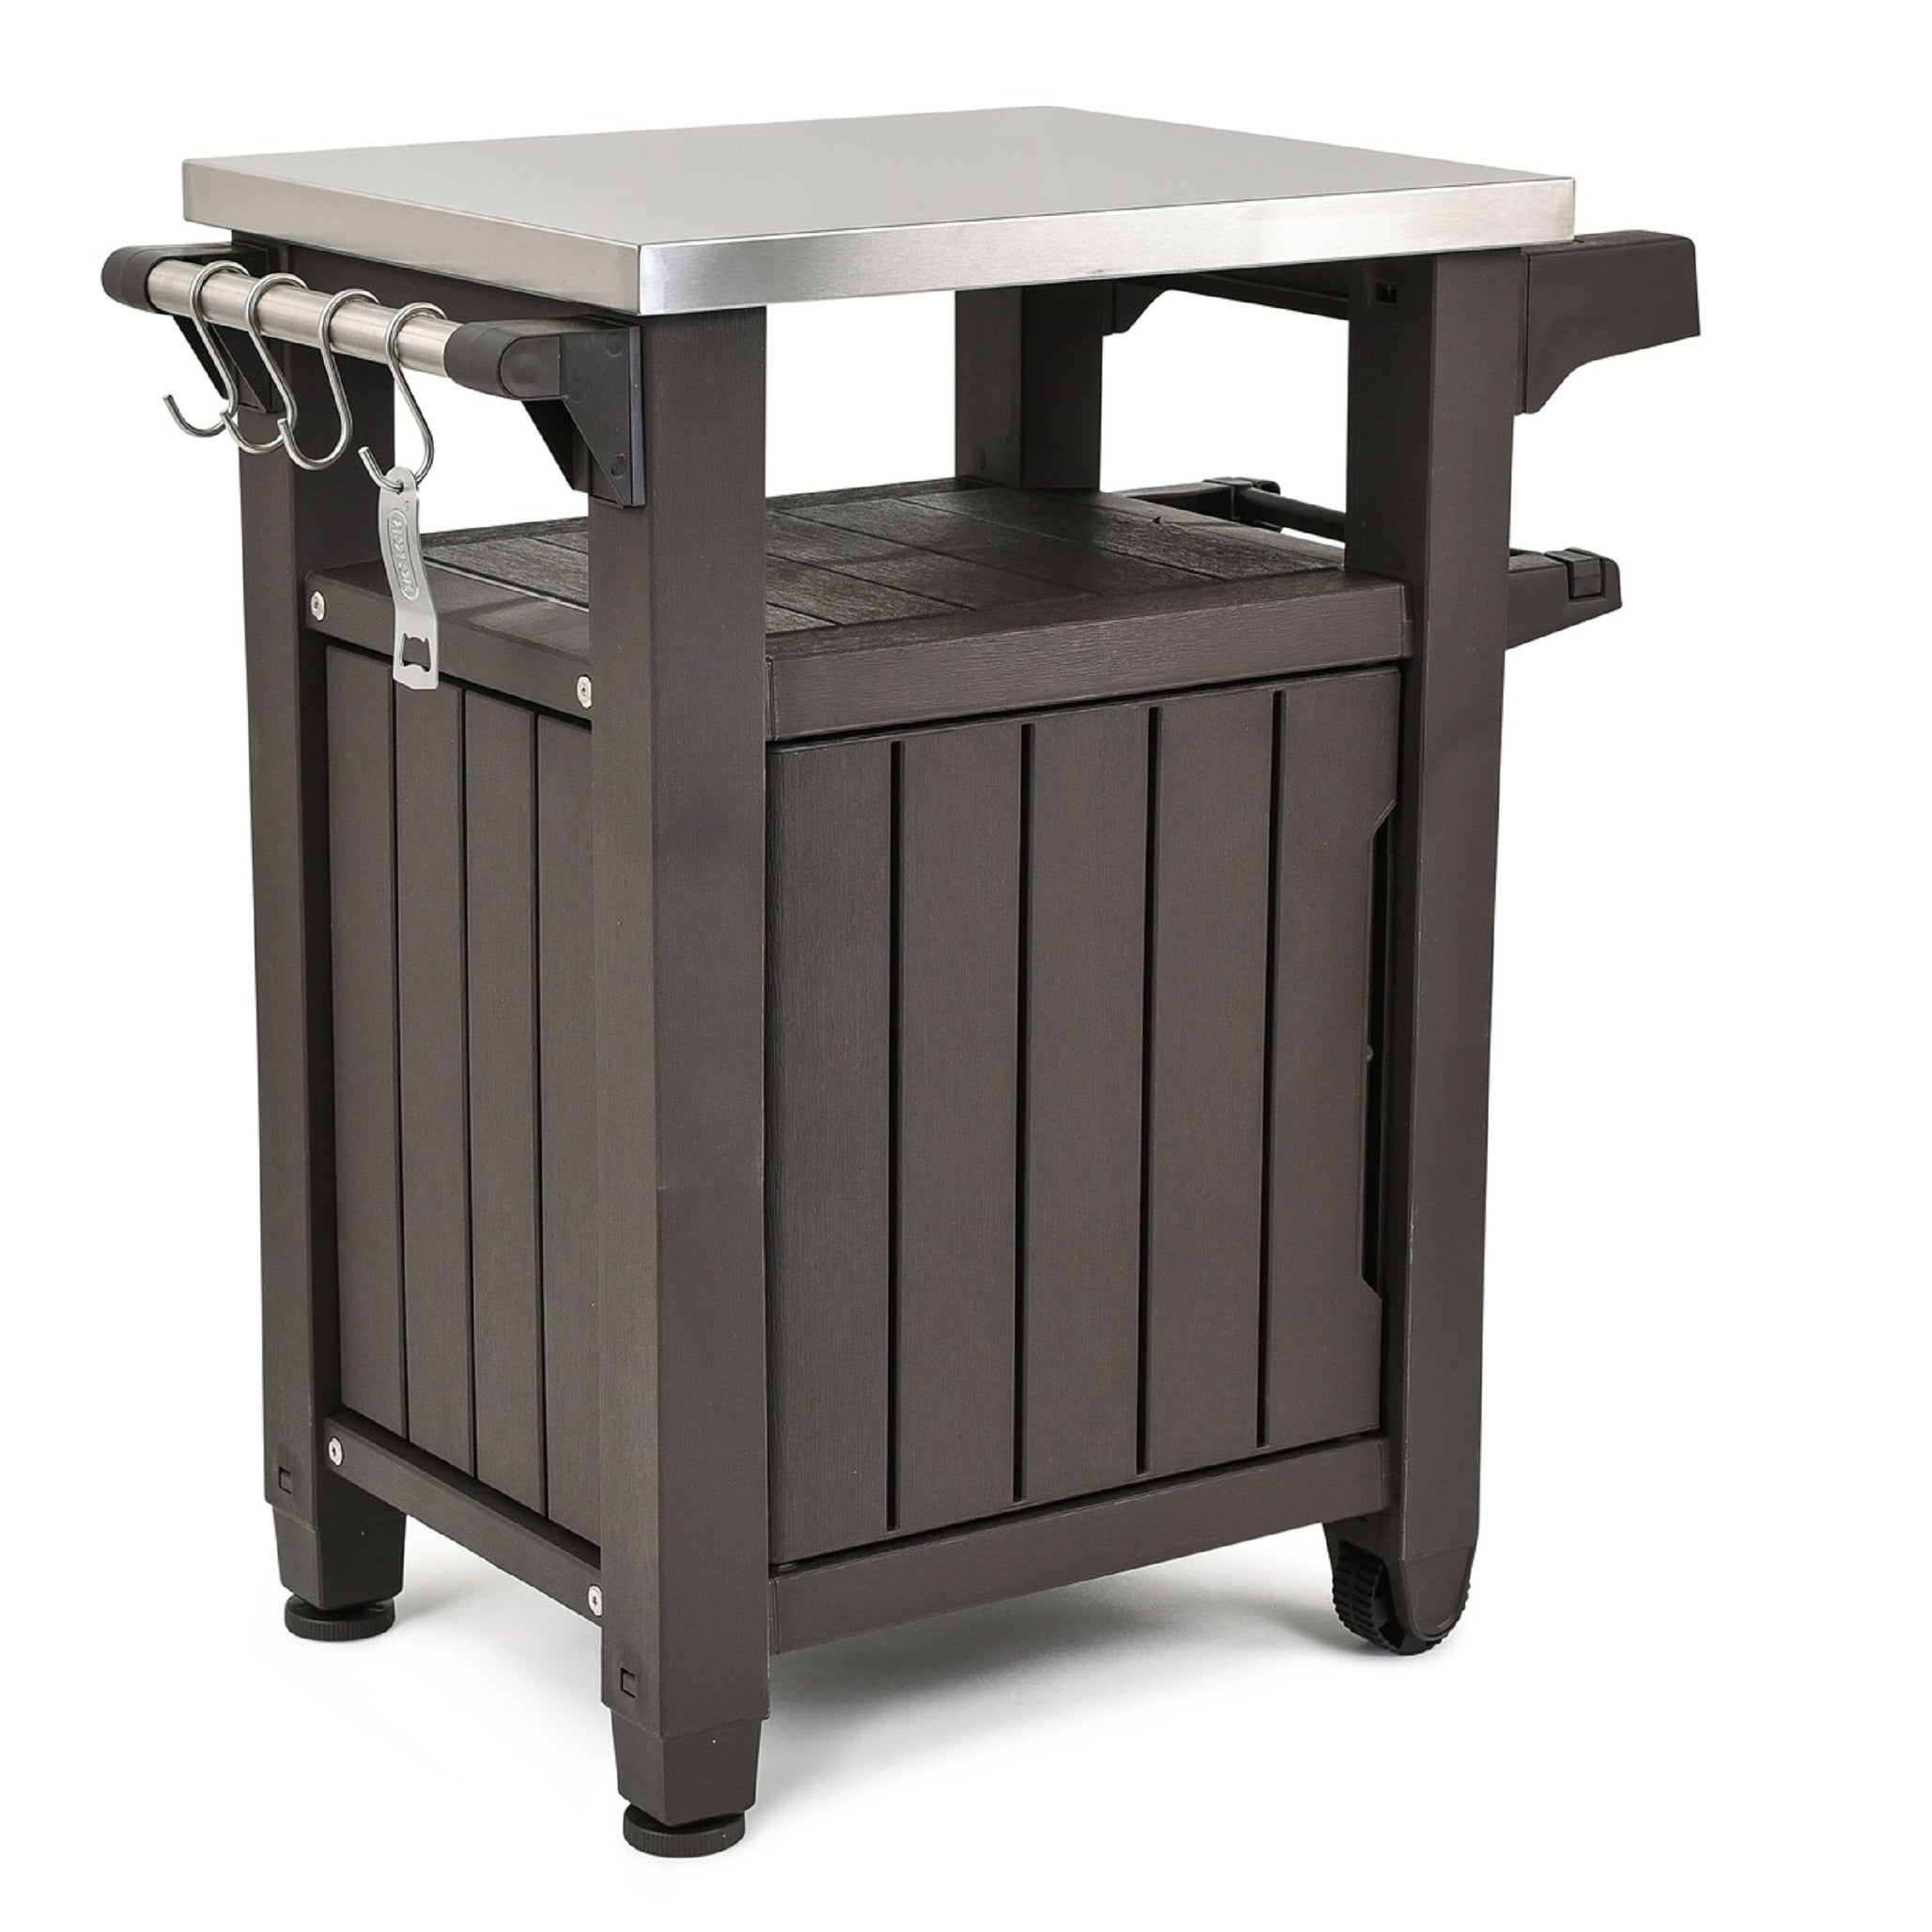 Shop keter unity indoor outdoor serving cart prep station with storage free shipping today overstock com 17925661